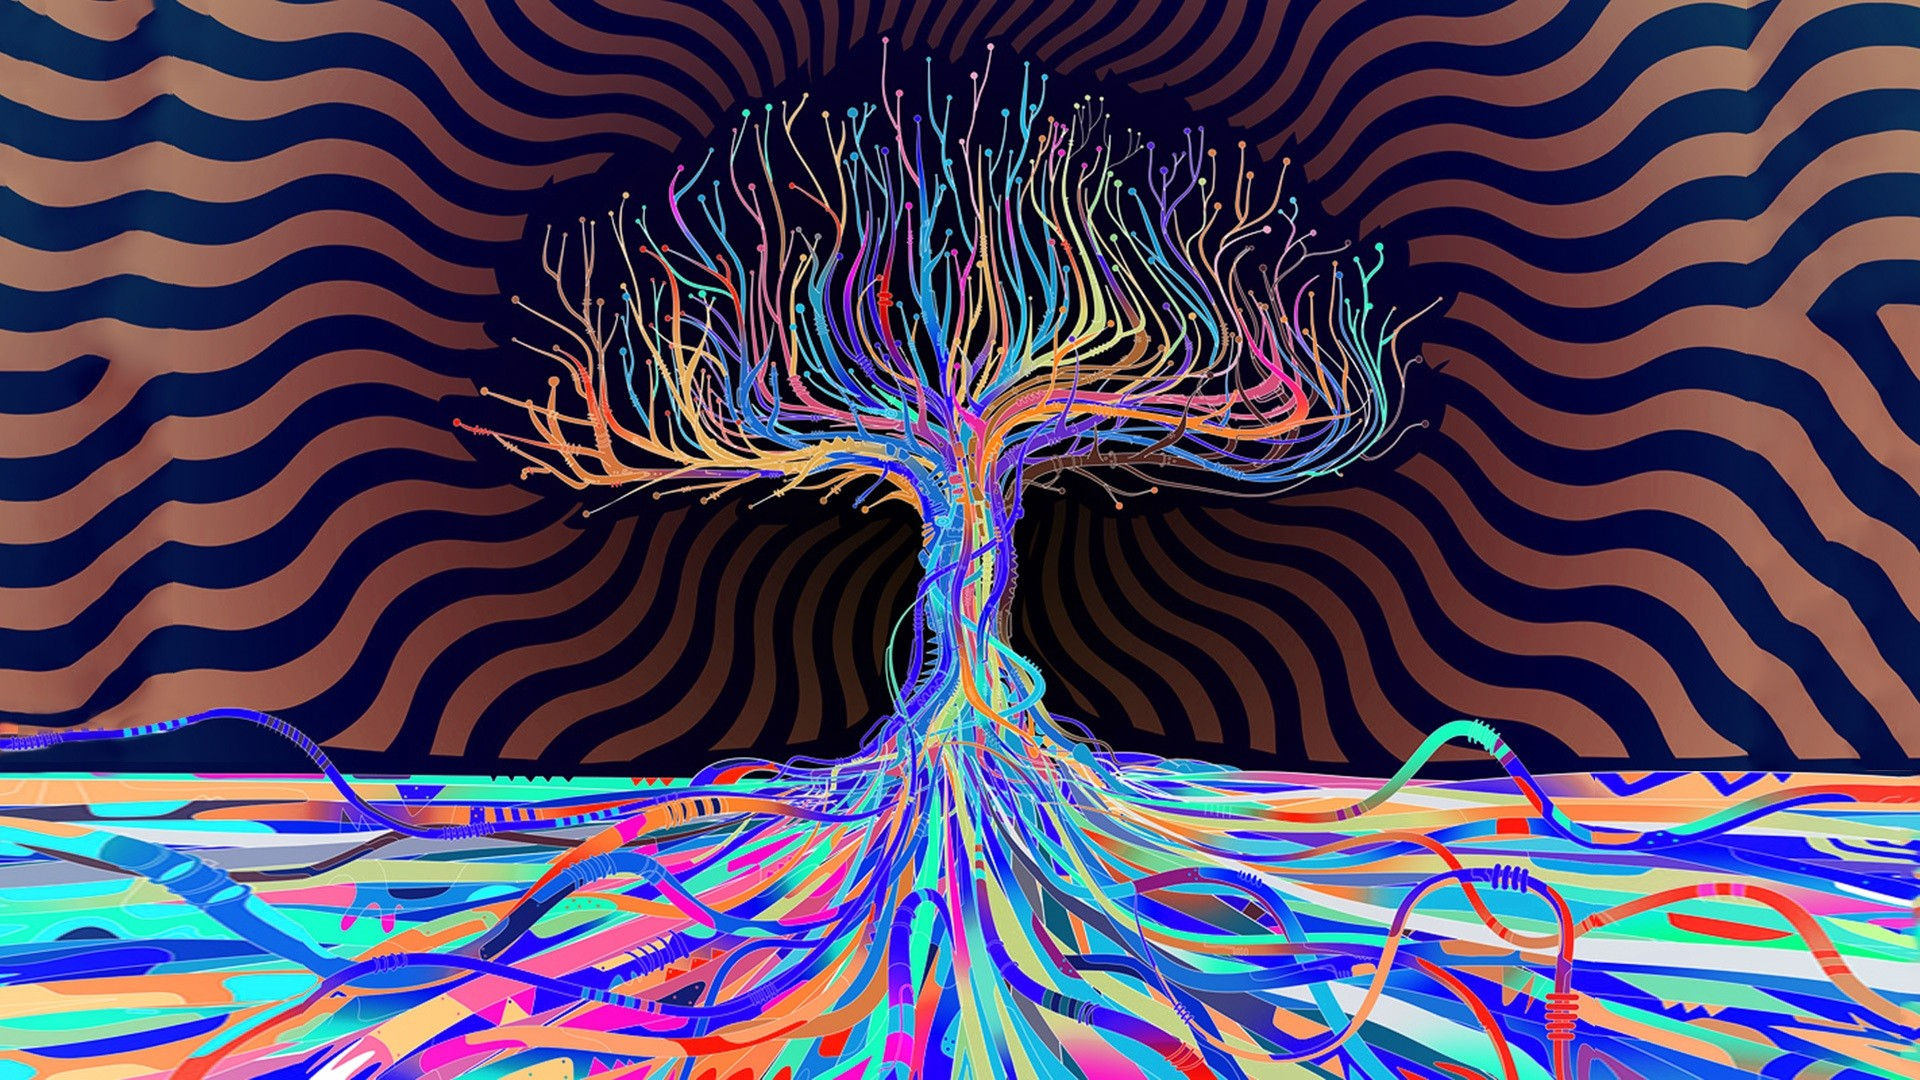 Psychedelic HD Wallpapers Wallpaper   HD Wallpapers   Pinterest    Psychedelic, Hd wallpaper and Wallpaper